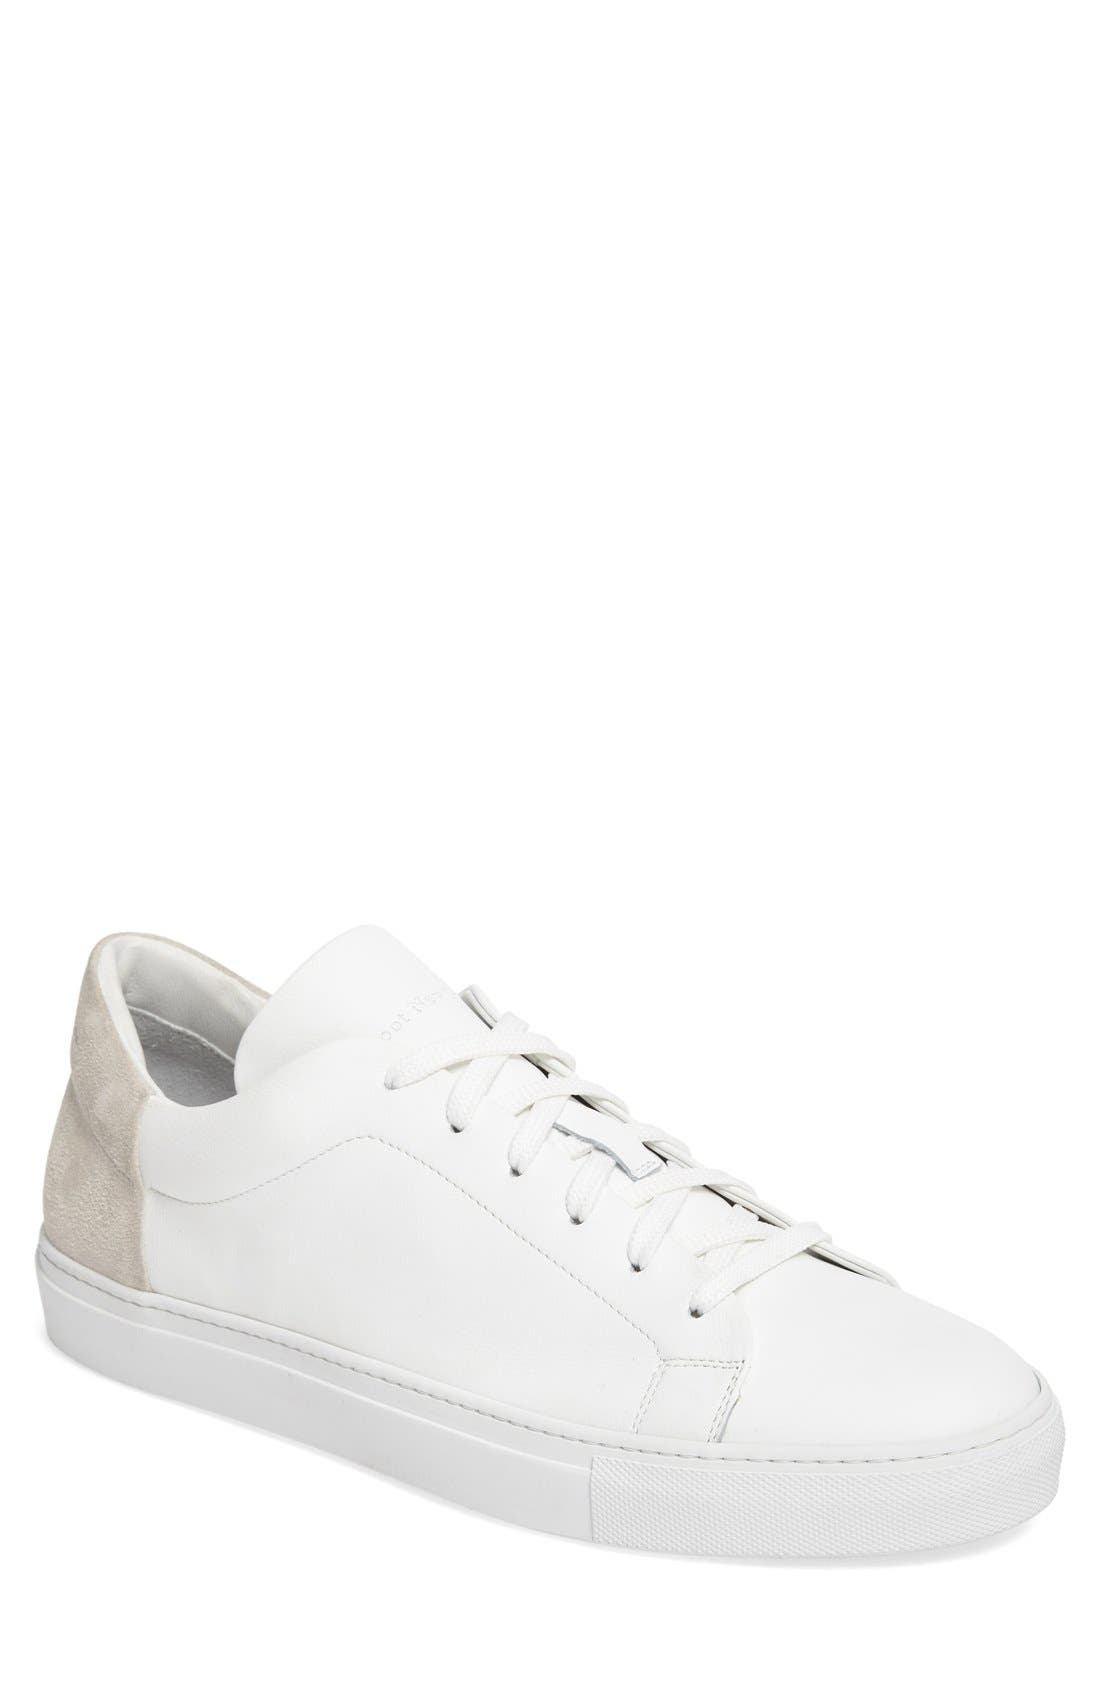 Alternate Image 1 Selected - To Boot New York Huston Sneaker (Men)